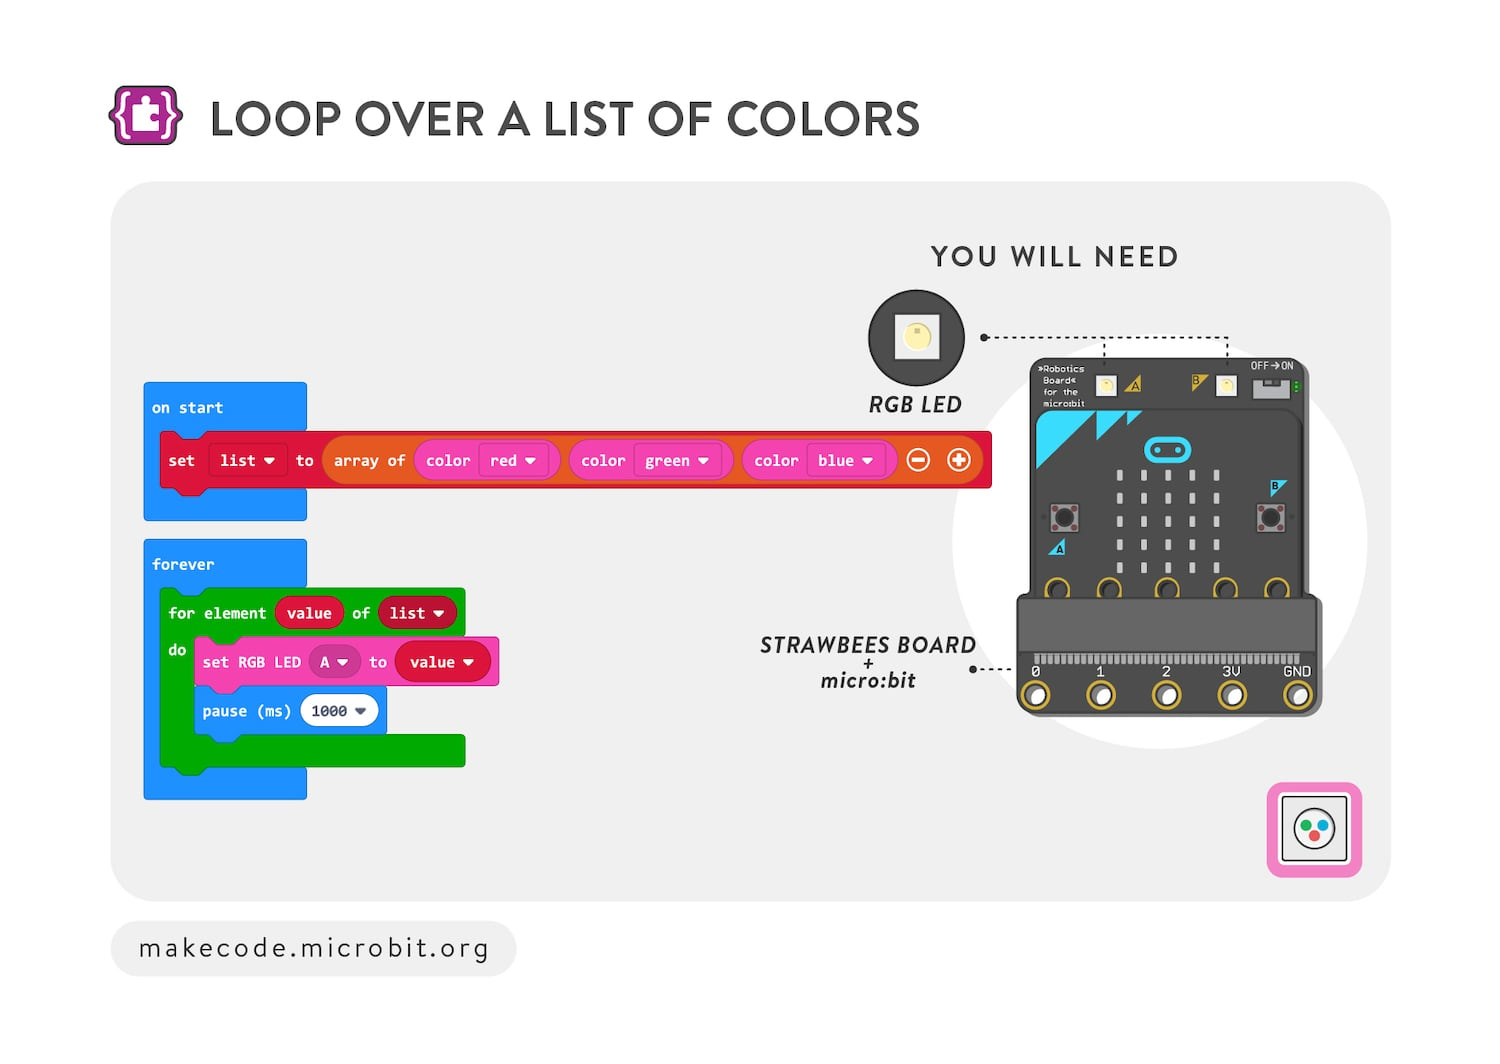 Loop over a list of colors